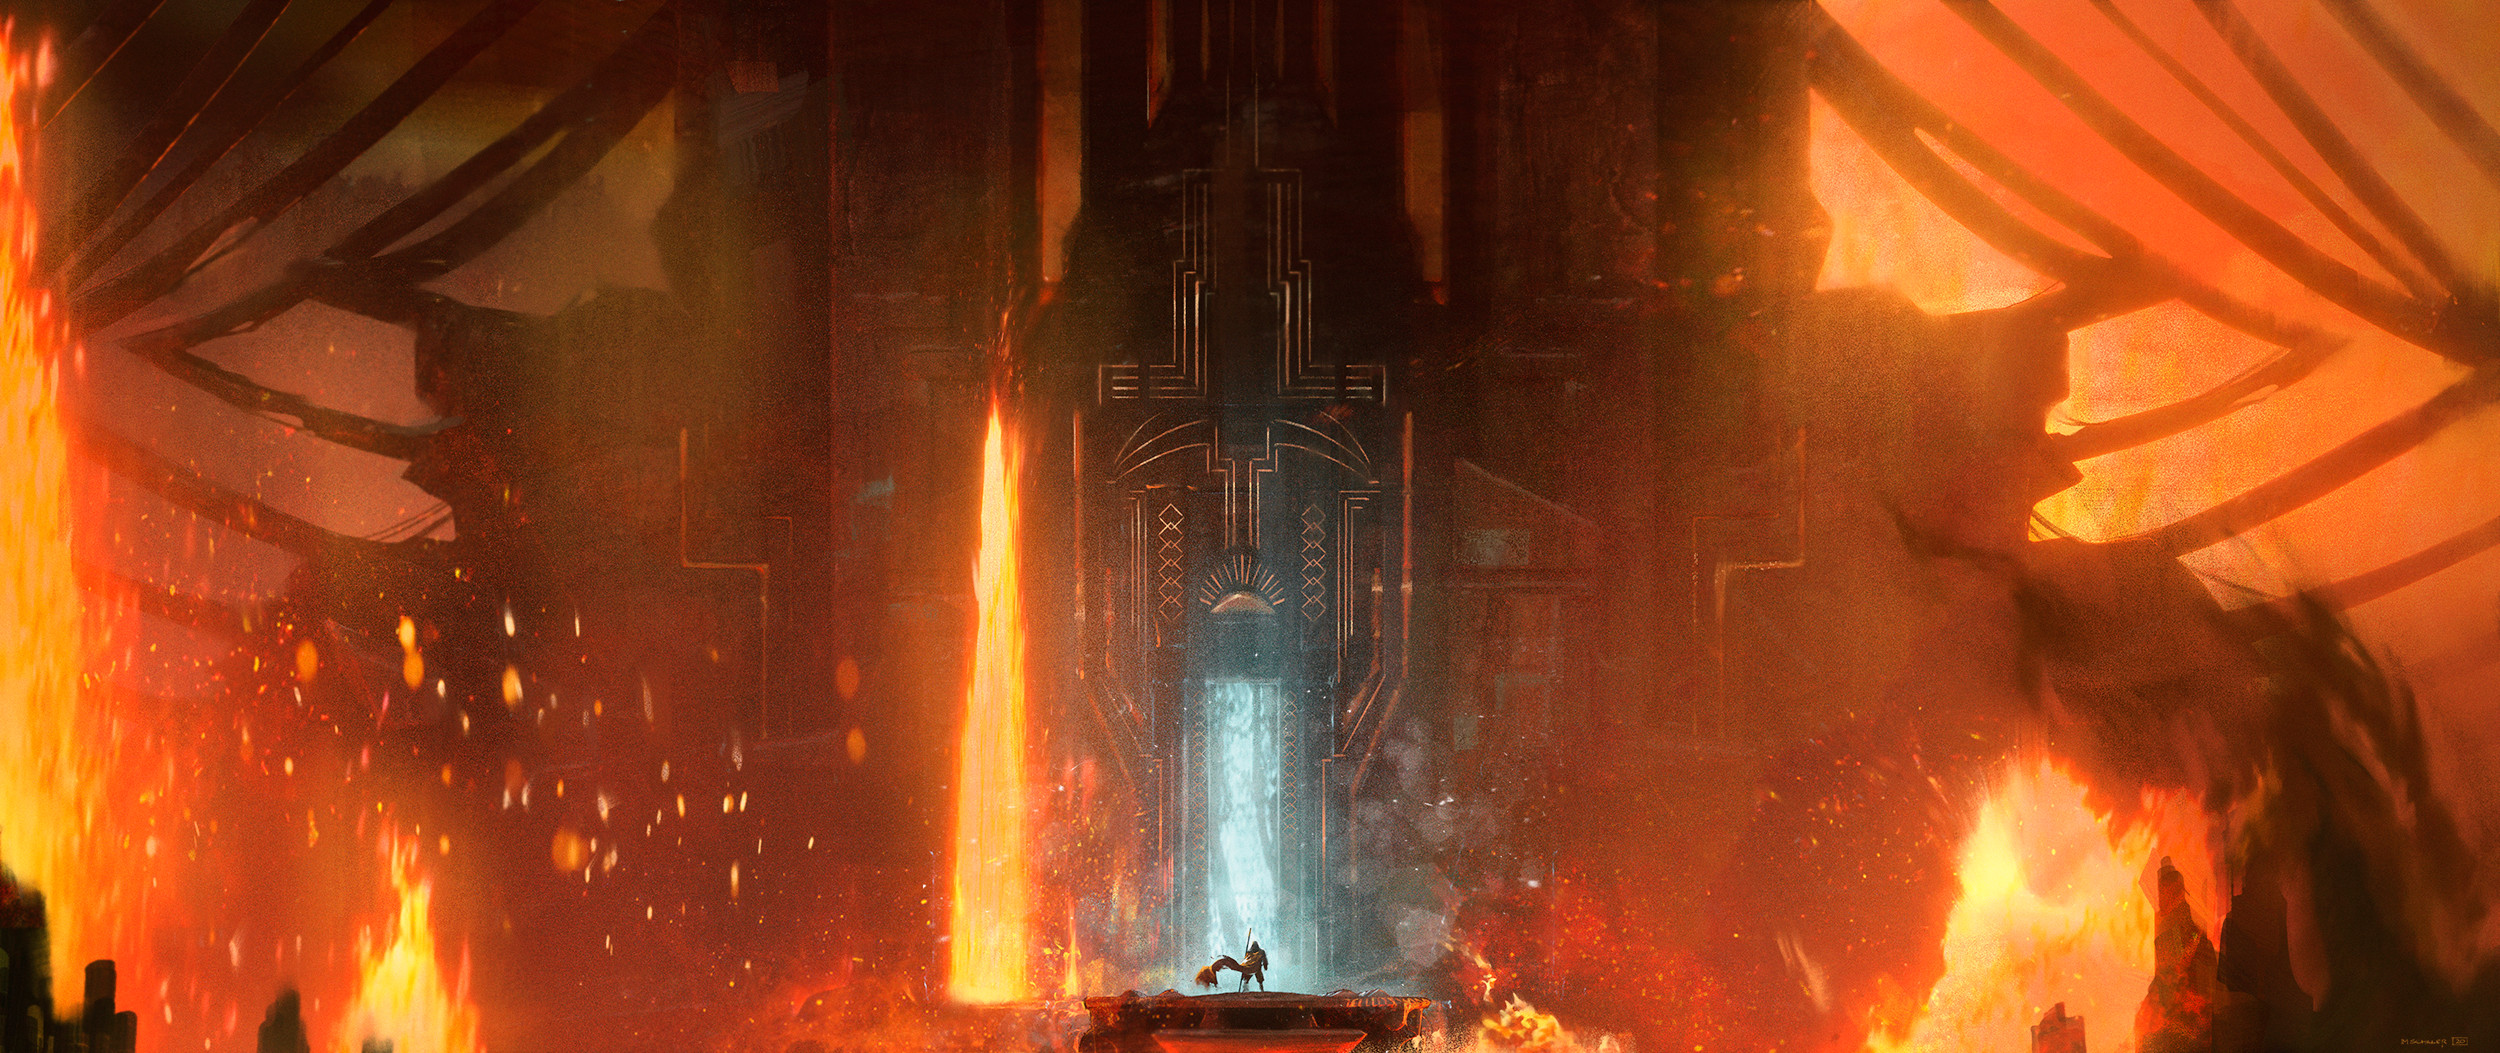 Fire Temple by Max Schiller